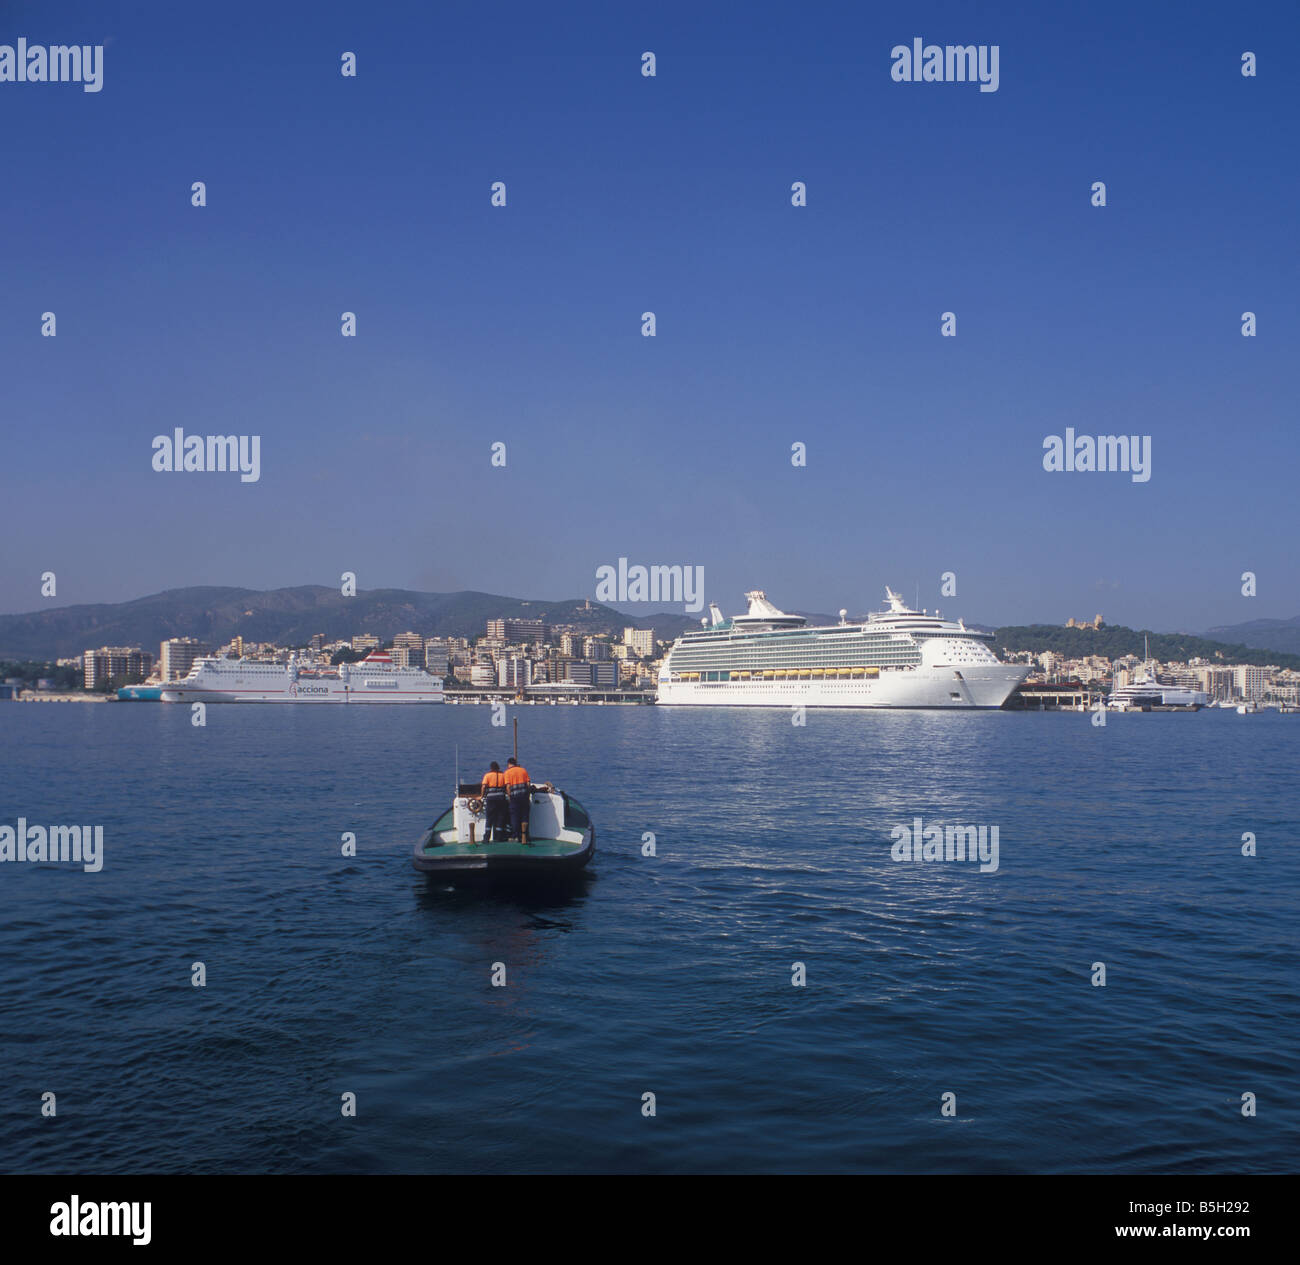 Royal Caribbean International Cruise Ship 'Navigator of the Seas' in the Port of Palma de Mallorca, Balearic - Stock Image